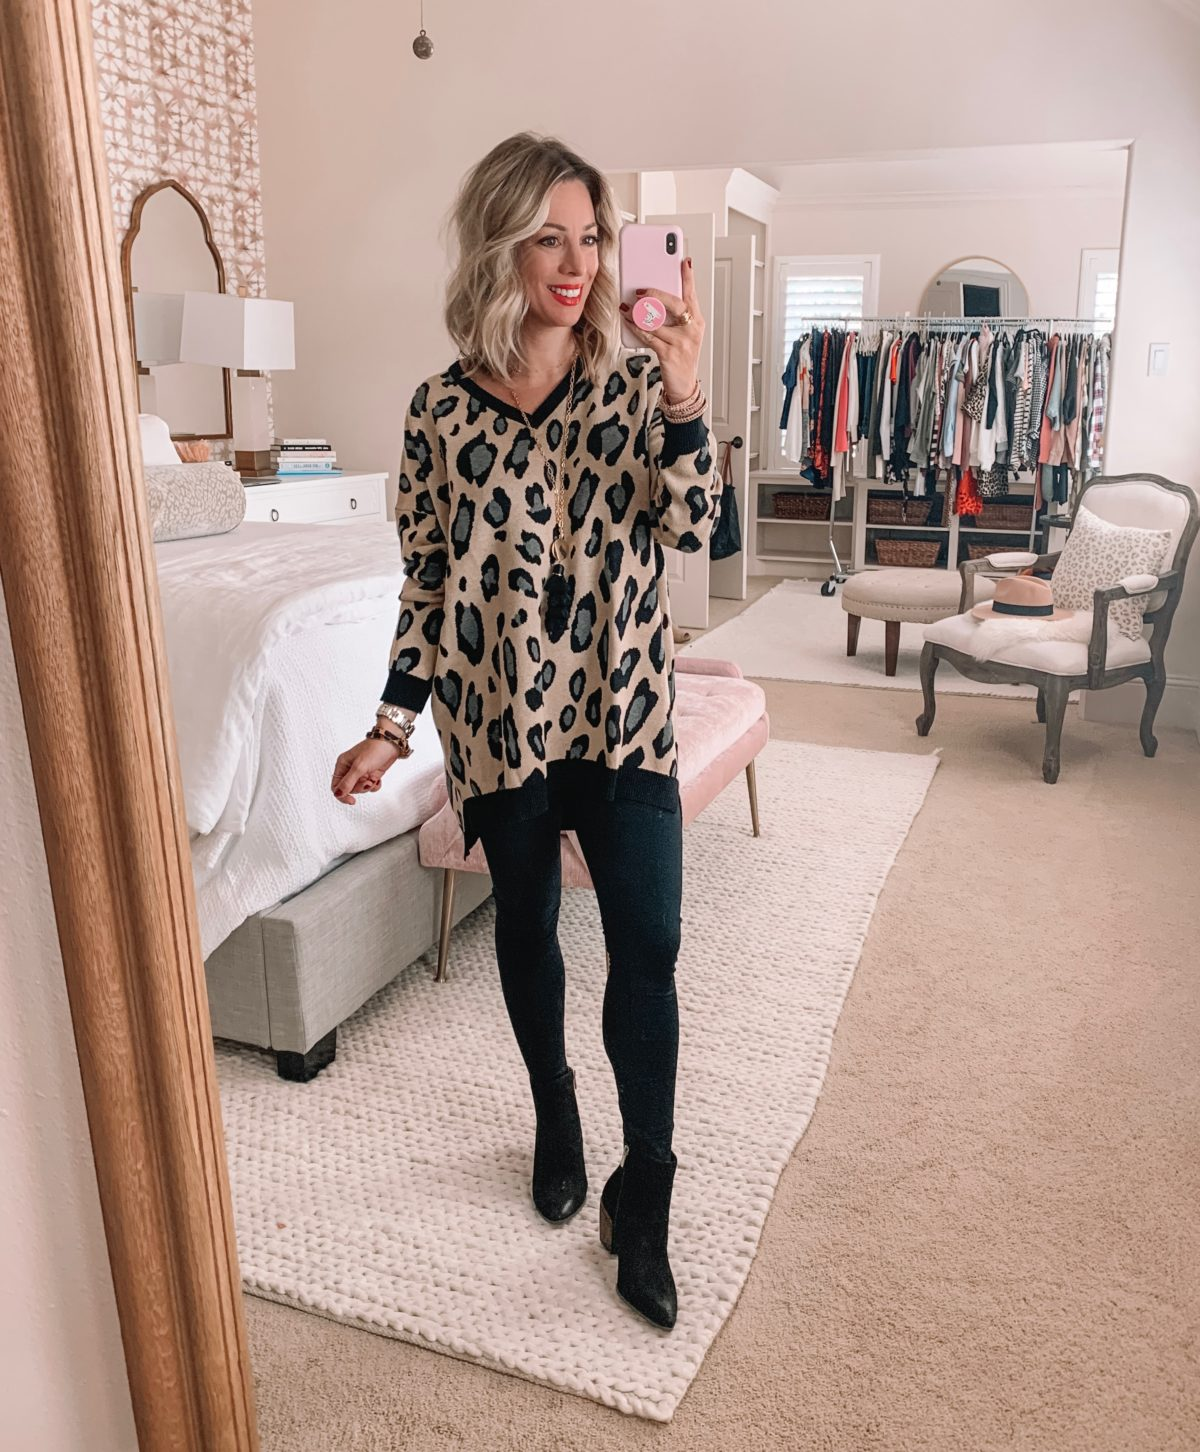 Amazon Prime Fashion- Leopard Sweater With Leggings